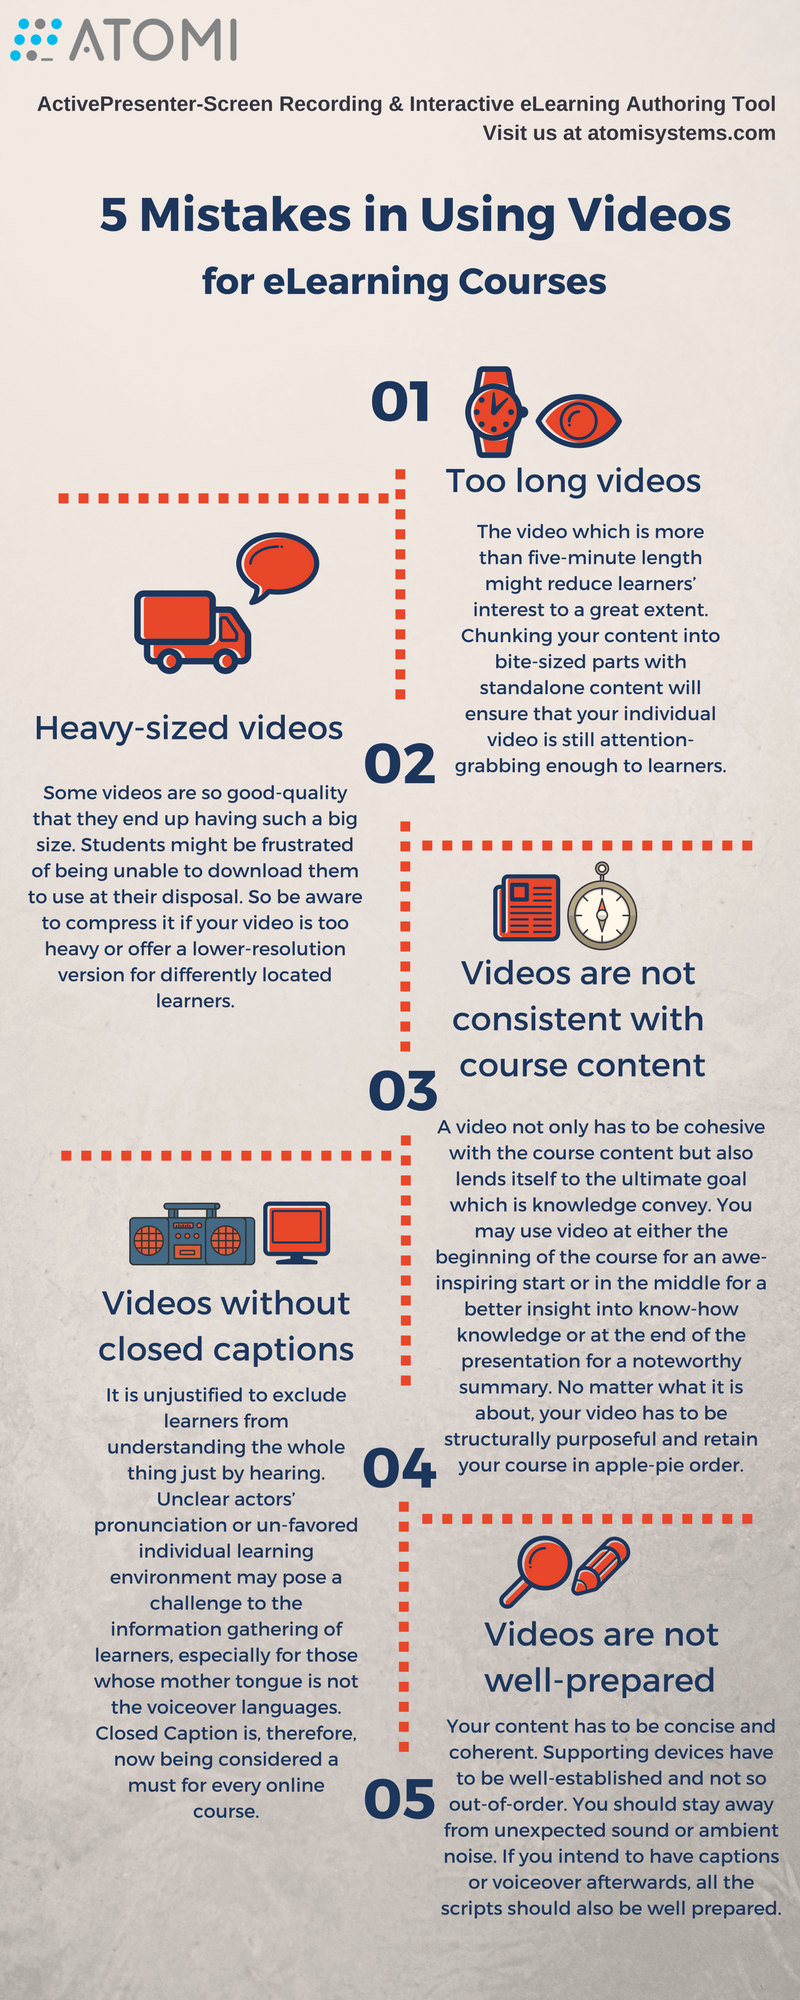 Mistakes in using videos for eLearning courses